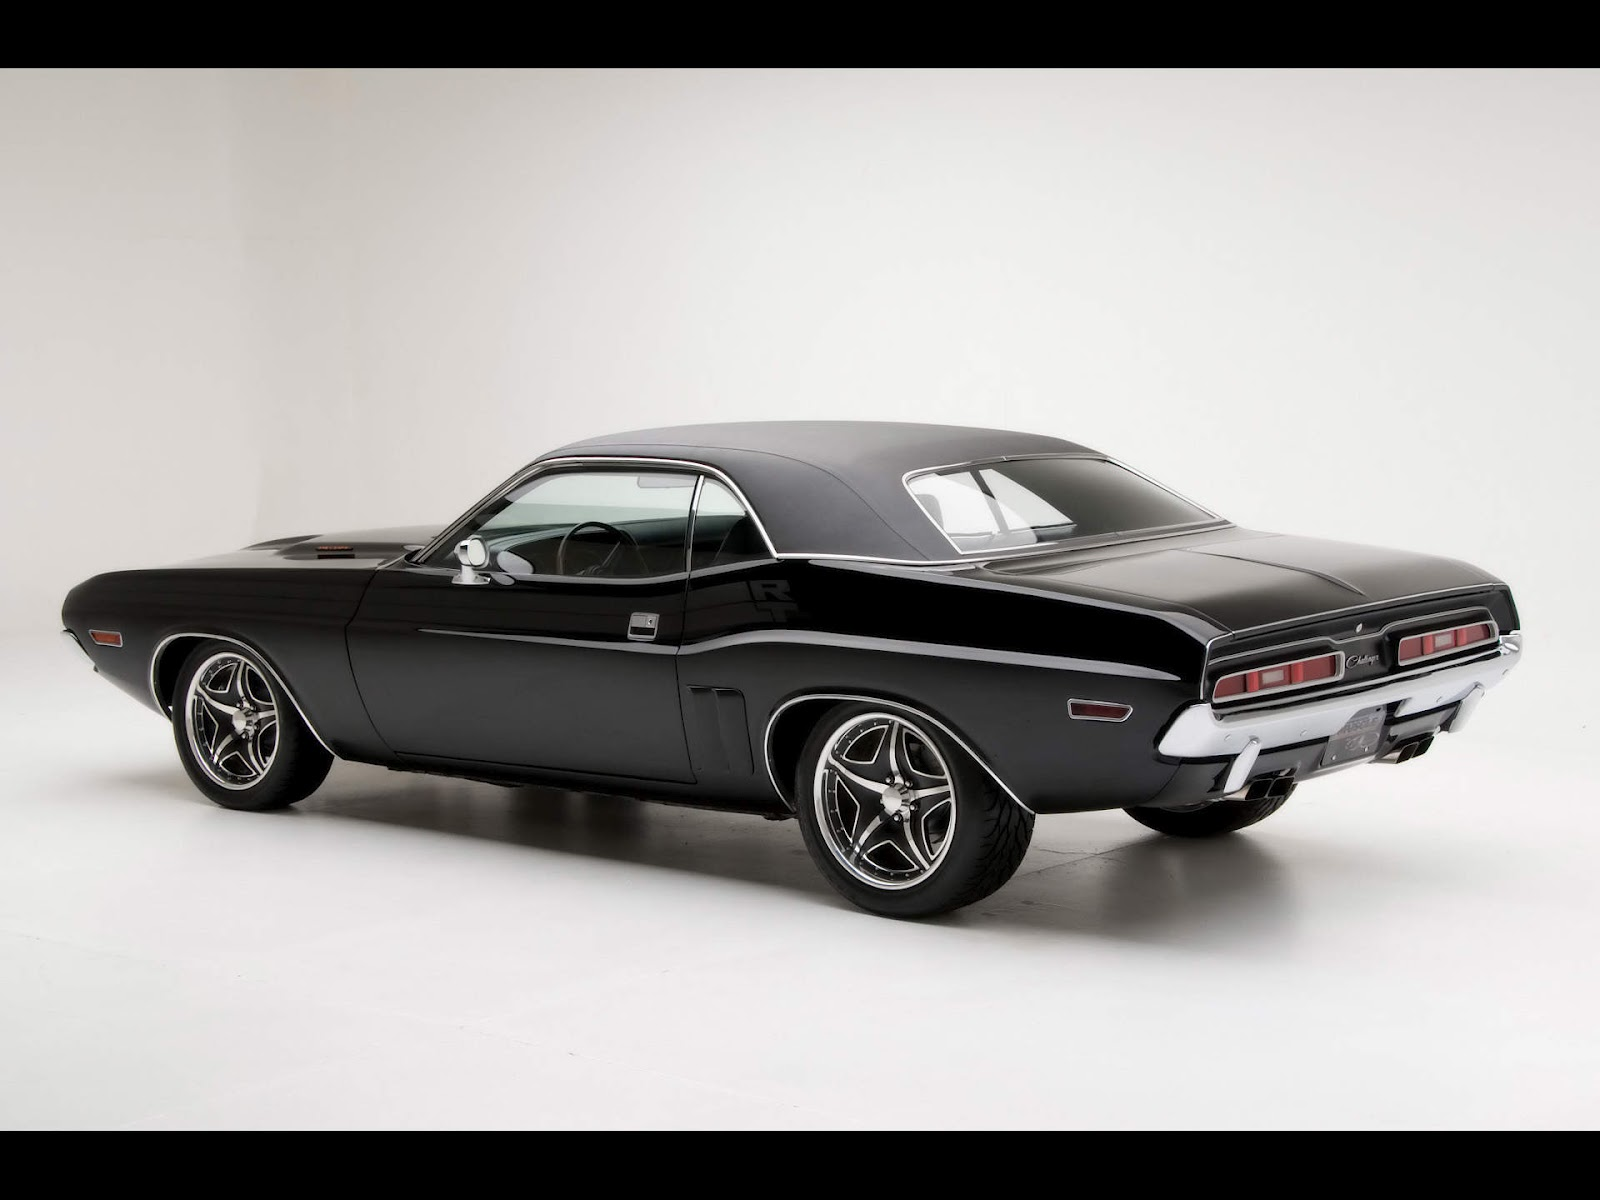 Dodge Challenger RT Classic Cars Wallpaper Muscle cars wallpaperjpg 1600x1200